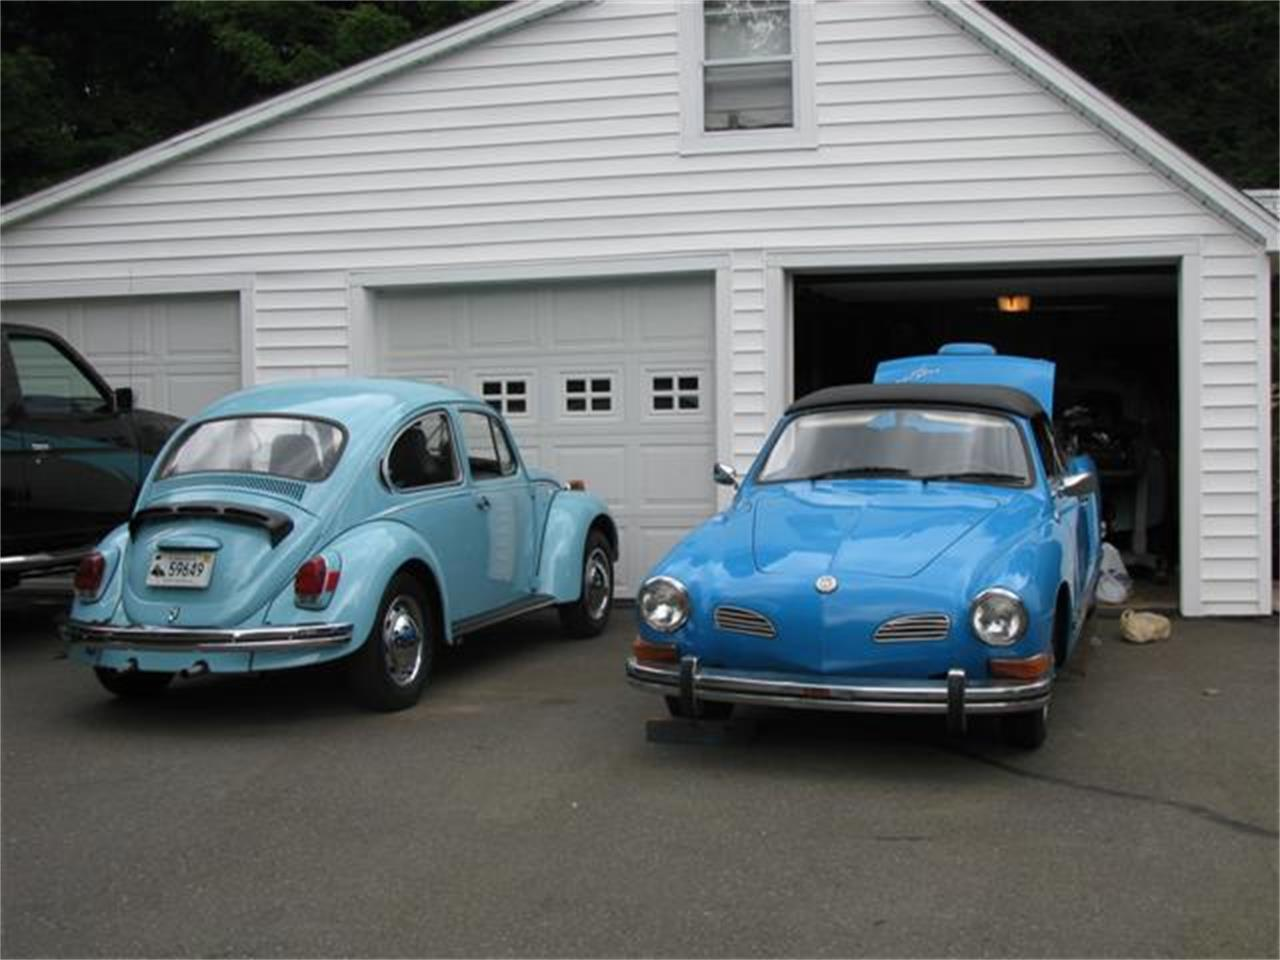 Large Picture of Classic '73 Volkswagen Karmann Ghia - $12,500.00 Offered by a Private Seller - EV9I